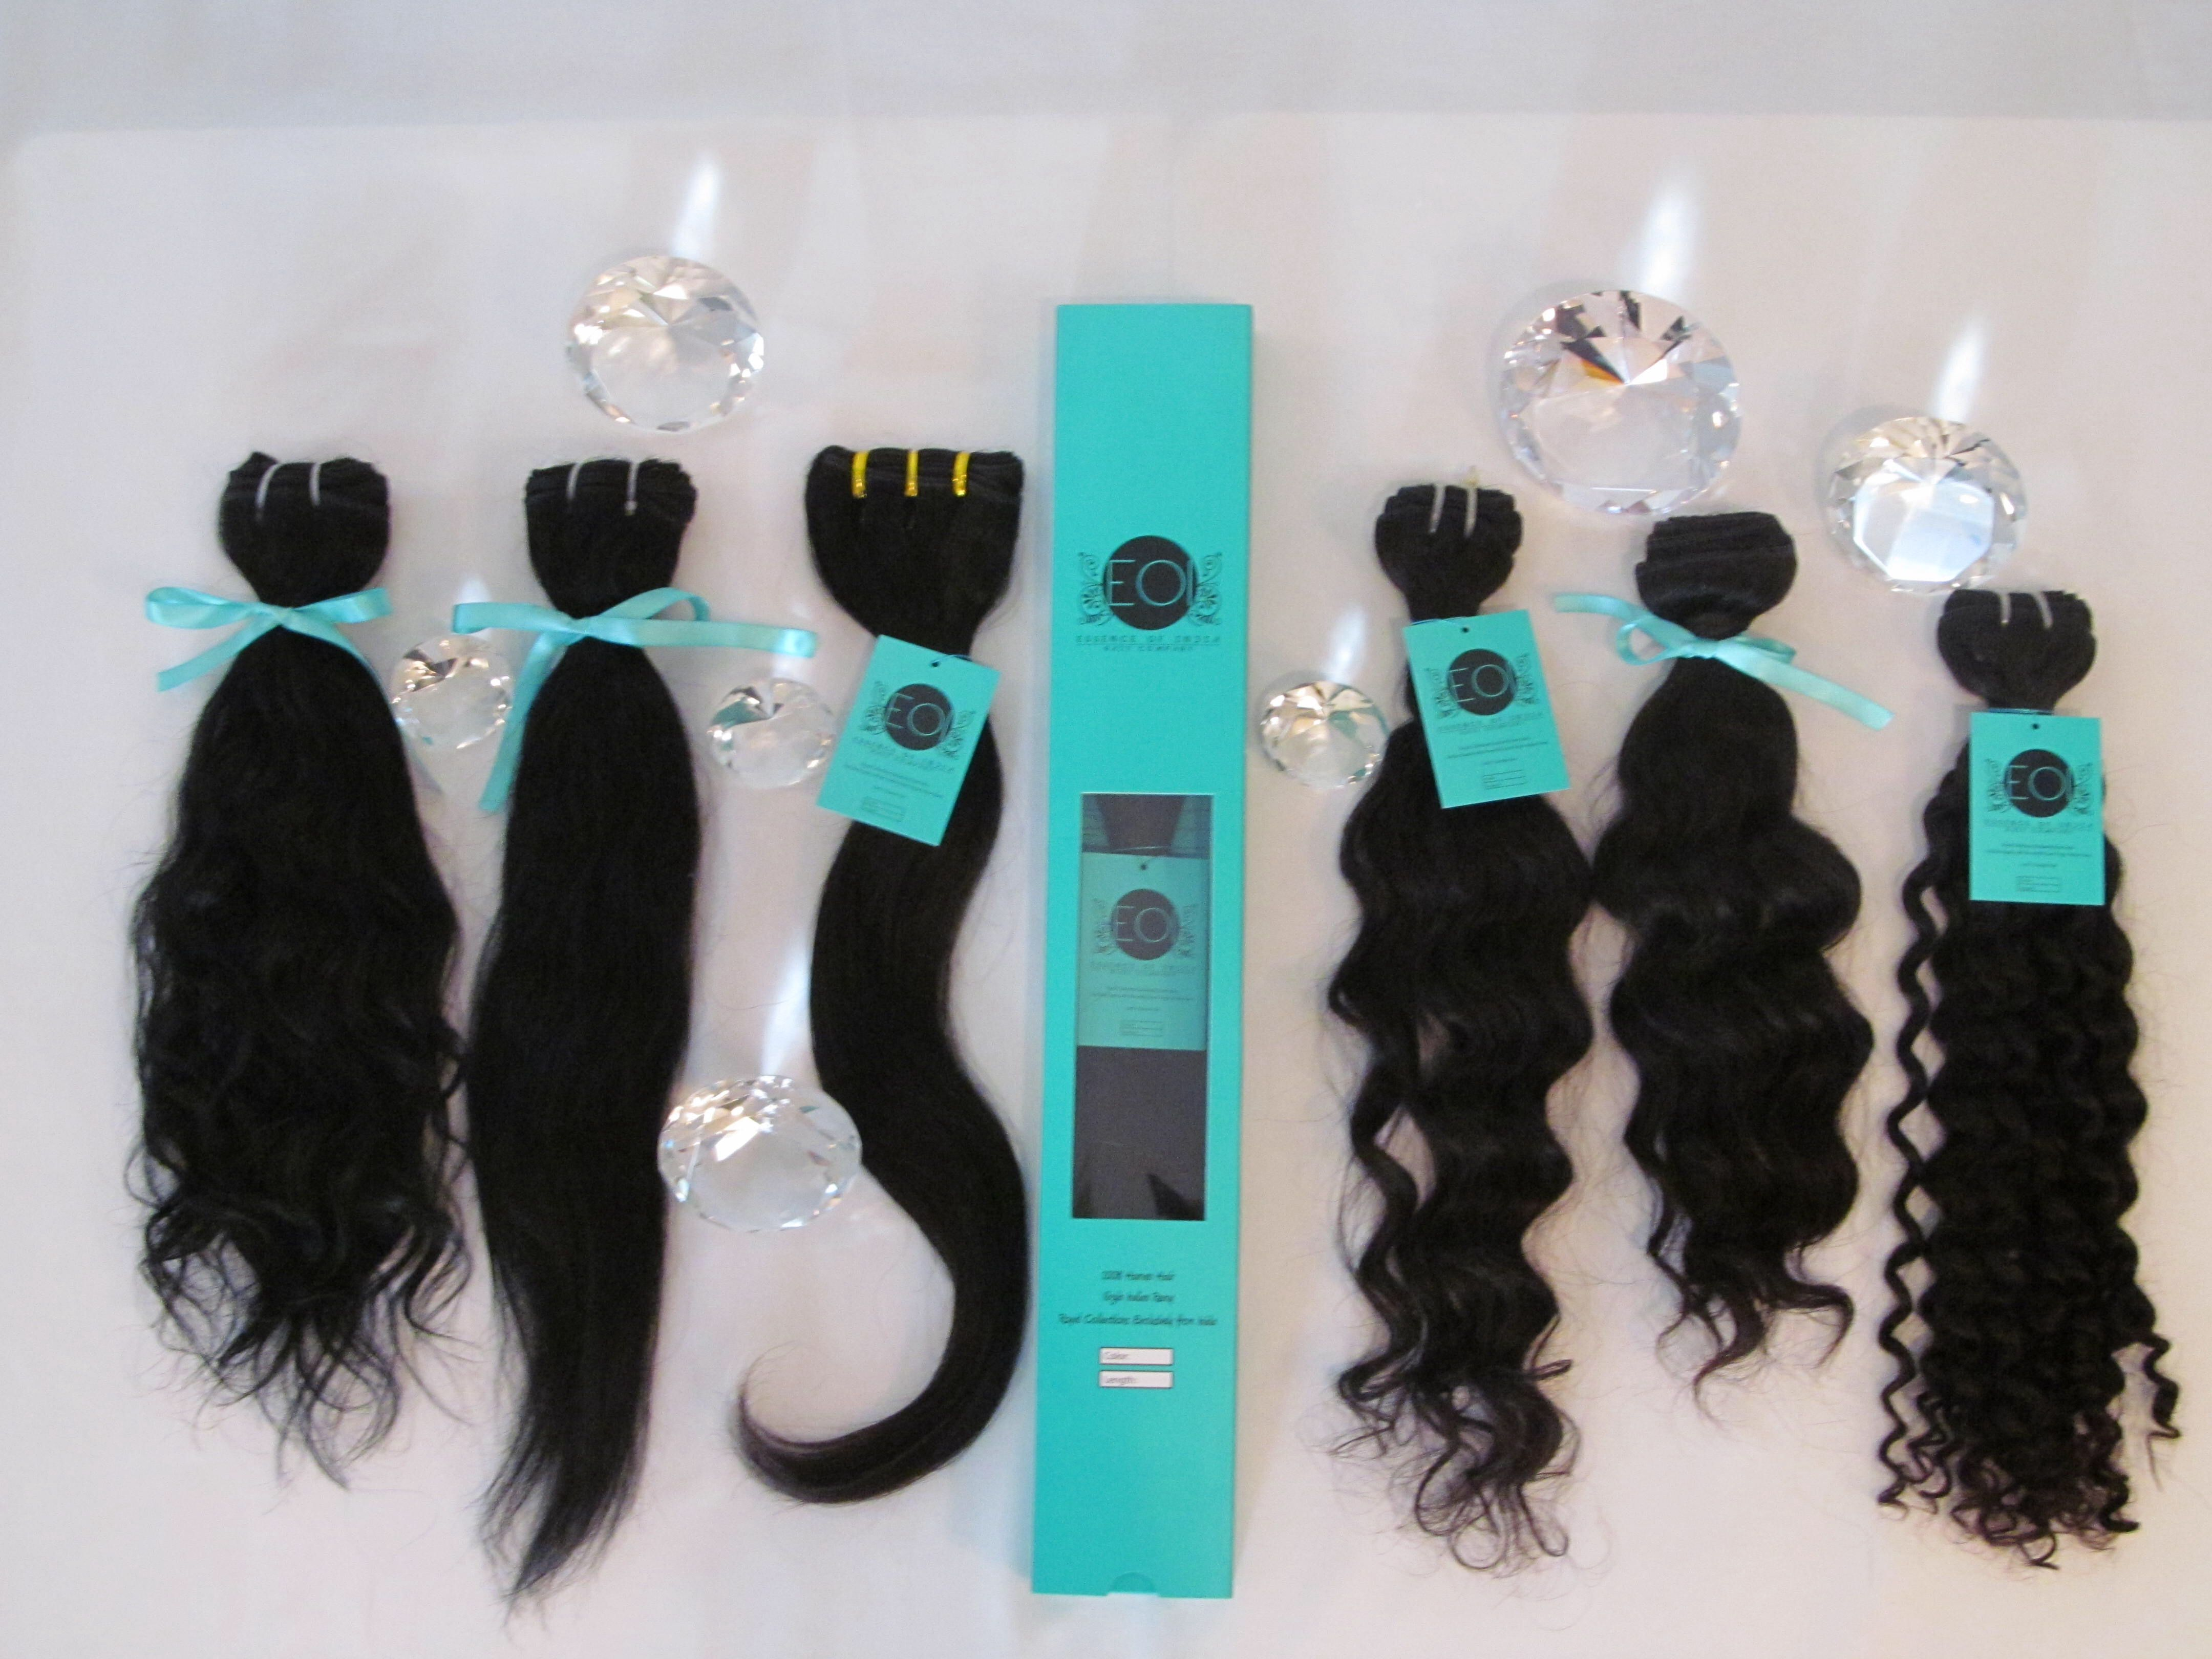 7 best hair display images on pinterest hairstyles clothing royal hair extensions only at eoi hair boutique stop by today and look like royalty pmusecretfo Choice Image